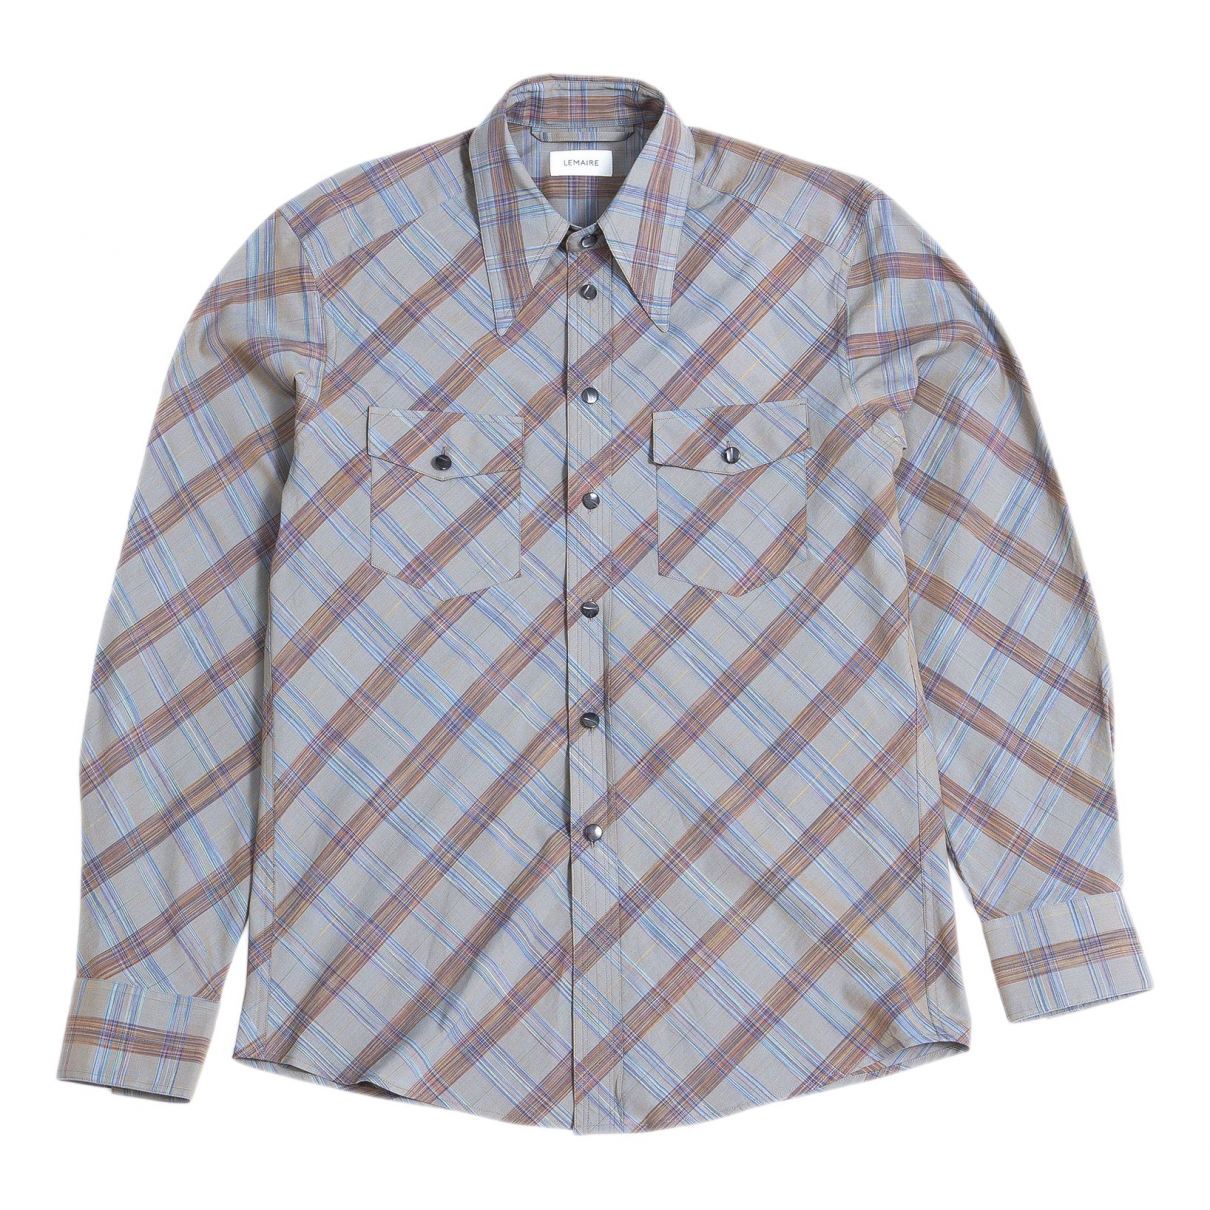 Lemaire \N Grey Cotton Shirts for Men S International